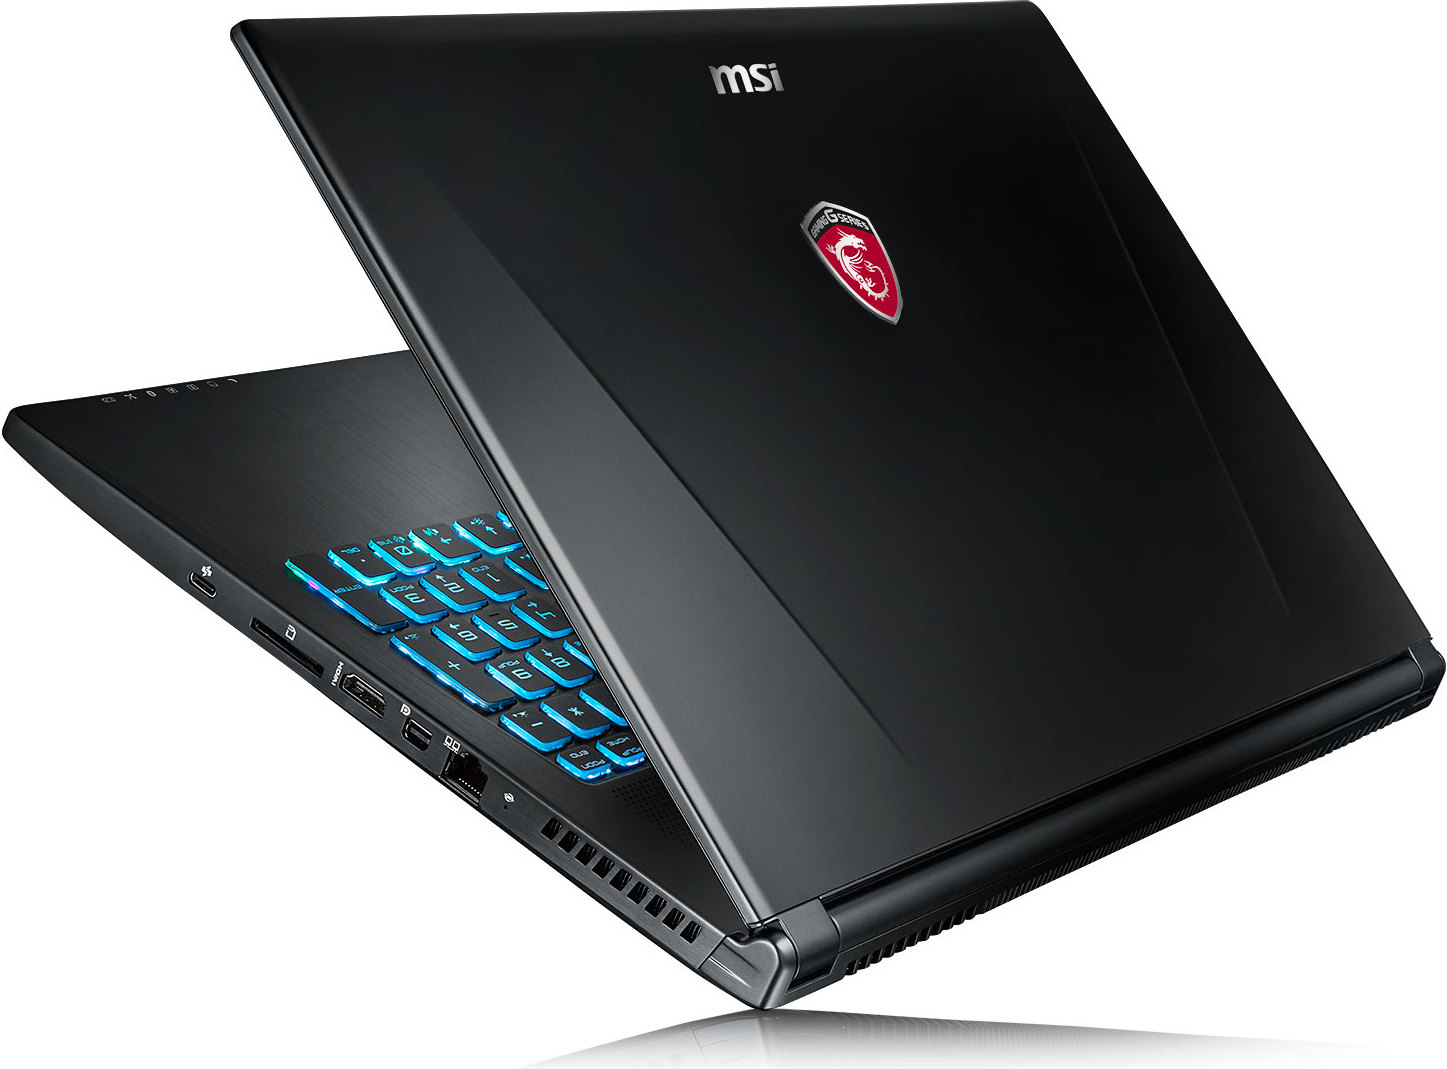 test du msi gs60 6qe un pc portable pour les gamers pr sentation et caract ristiques. Black Bedroom Furniture Sets. Home Design Ideas